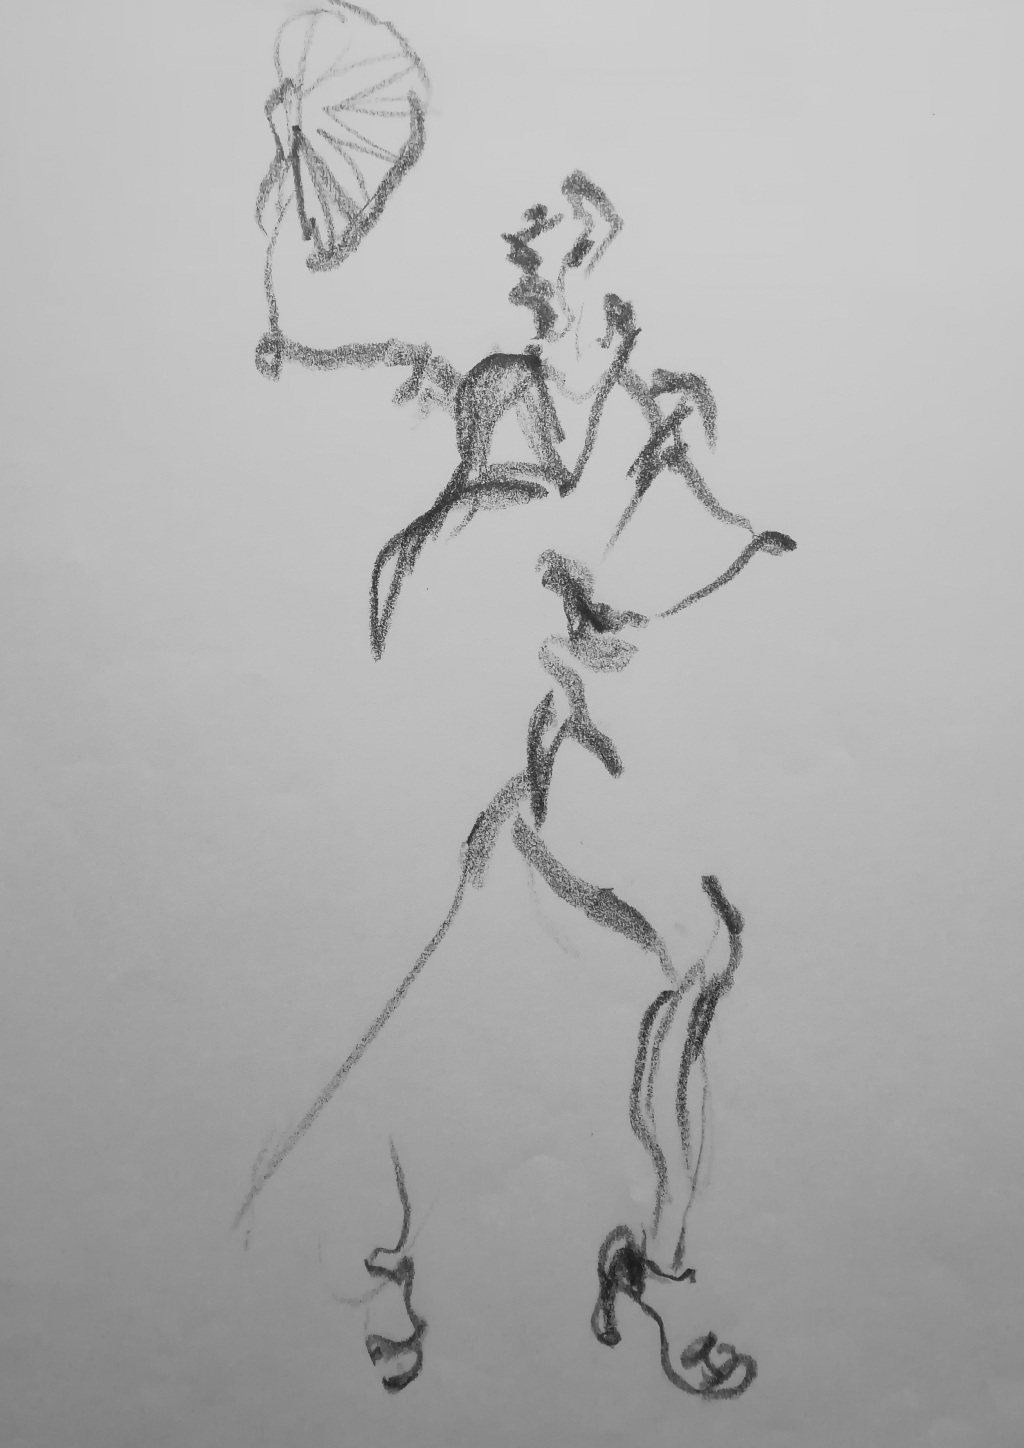 On the runway pencil drawing